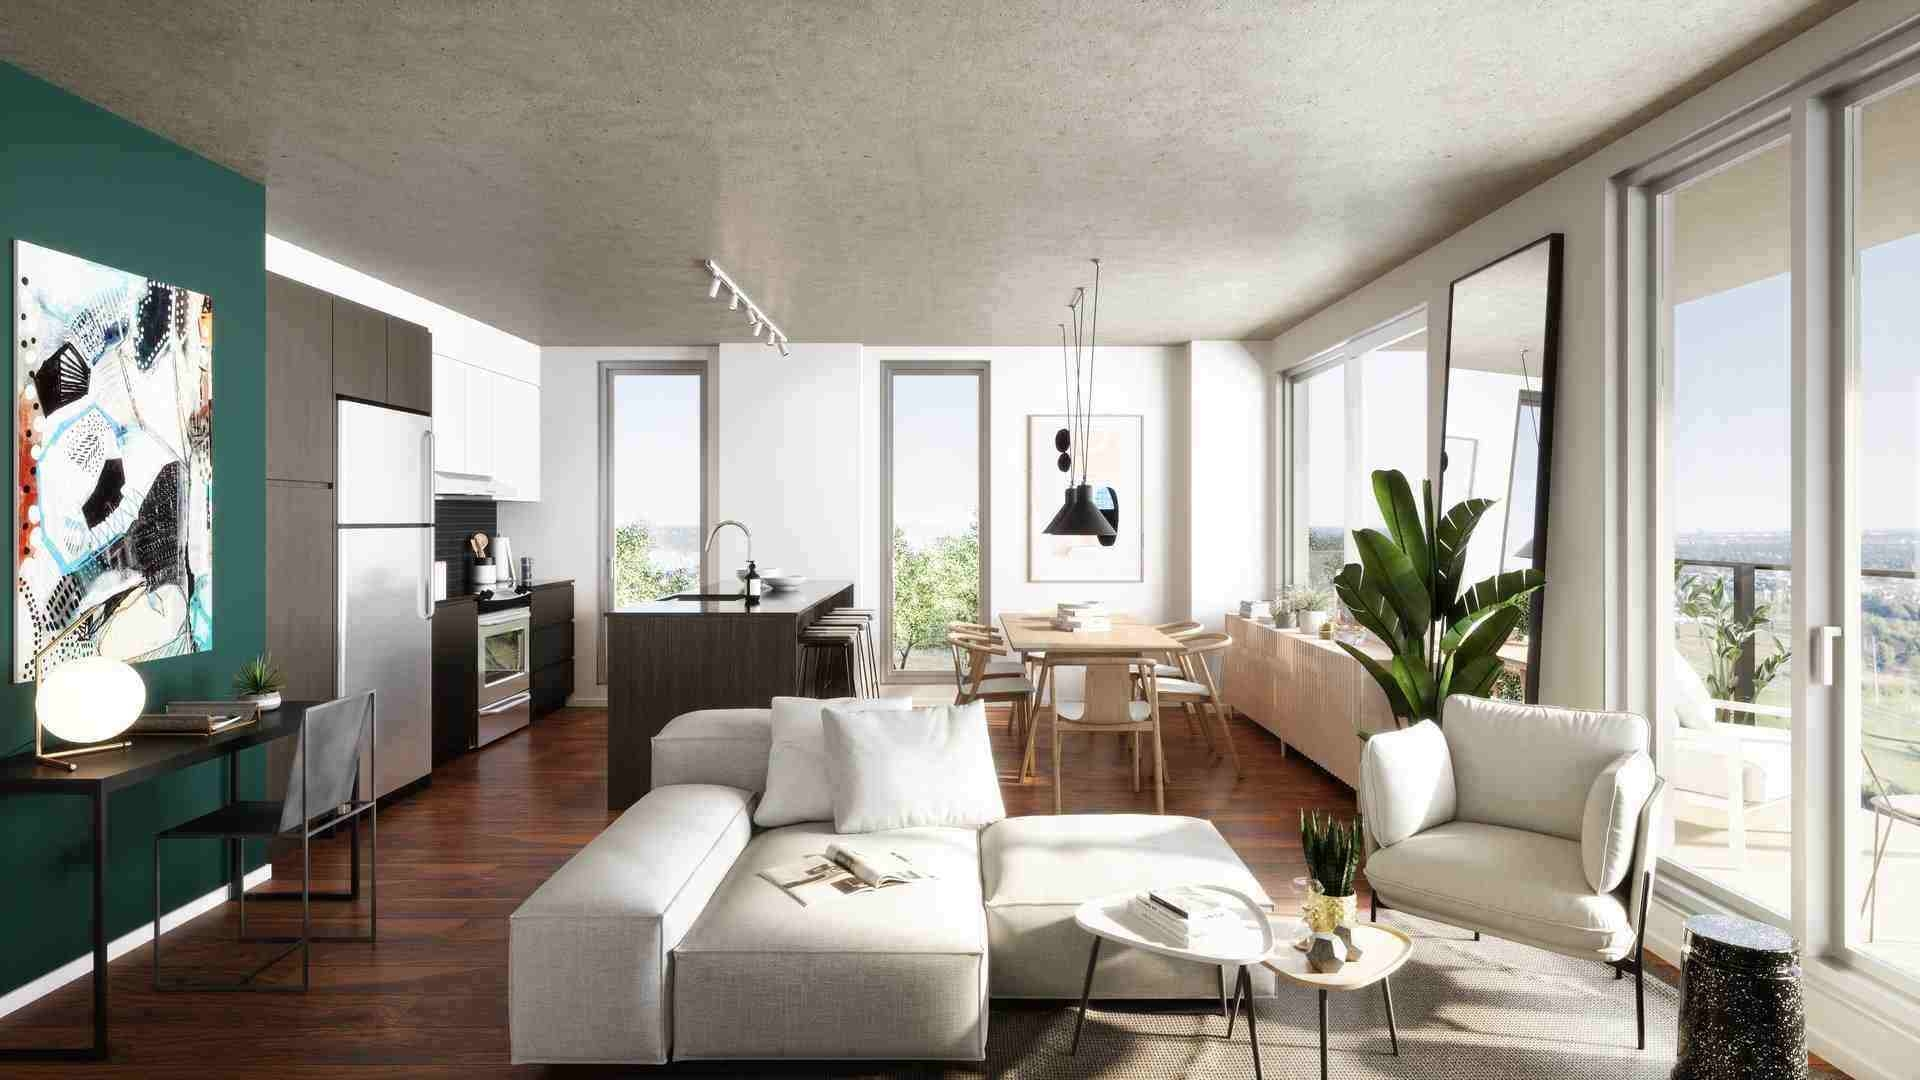 Grand Studio à louer à Brossard par Devimco Appartements